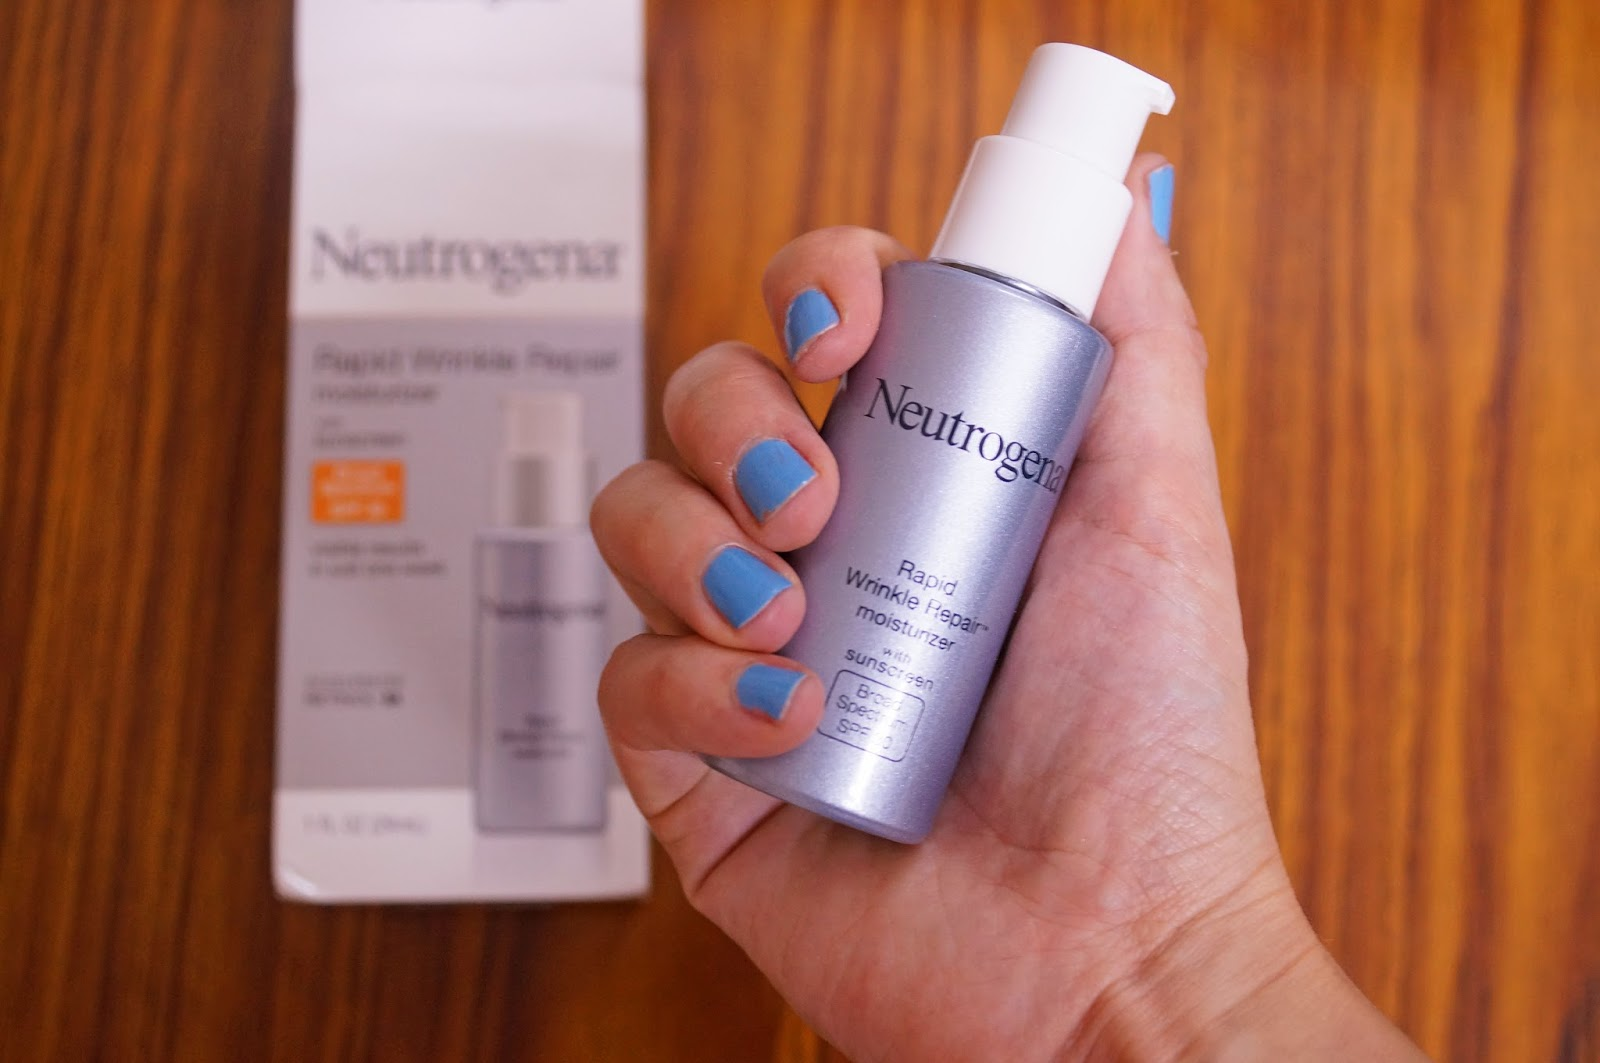 Neutrogena Rapid Wrinkle Repair Cream